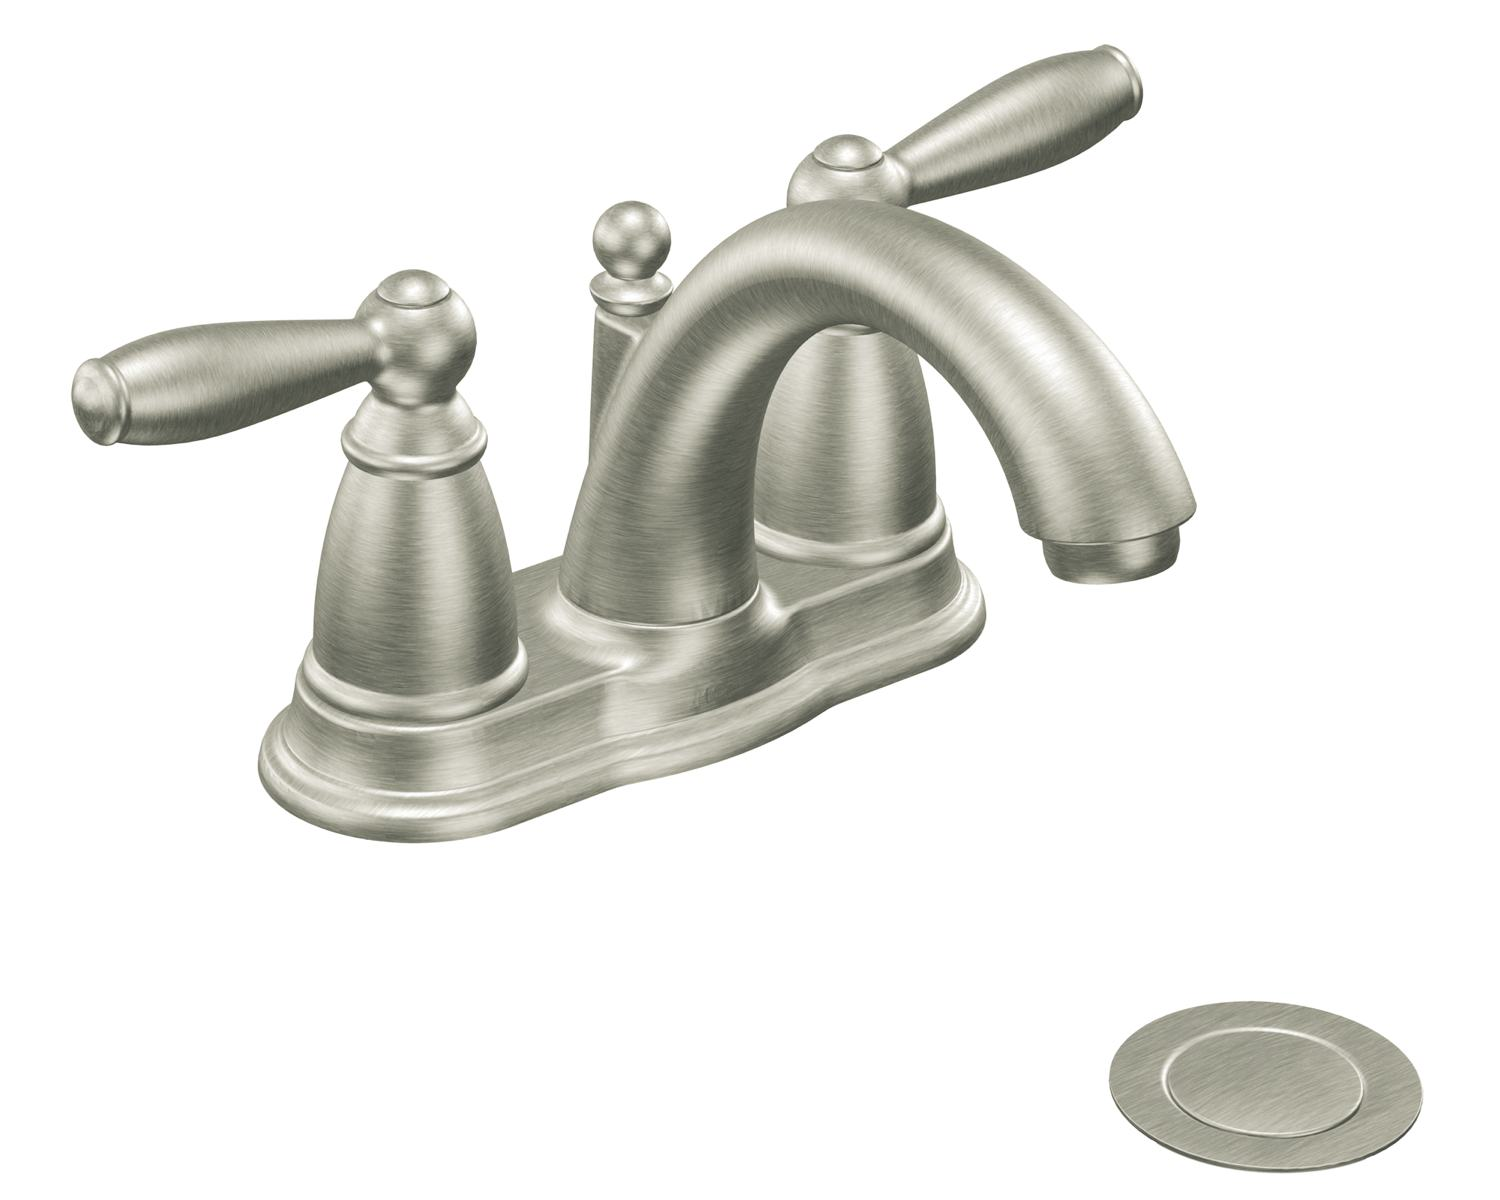 bathroom facuets brantford bathroom faucet brushed nickel moen  main nickel lg brantford bathroom faucet brushed nickel